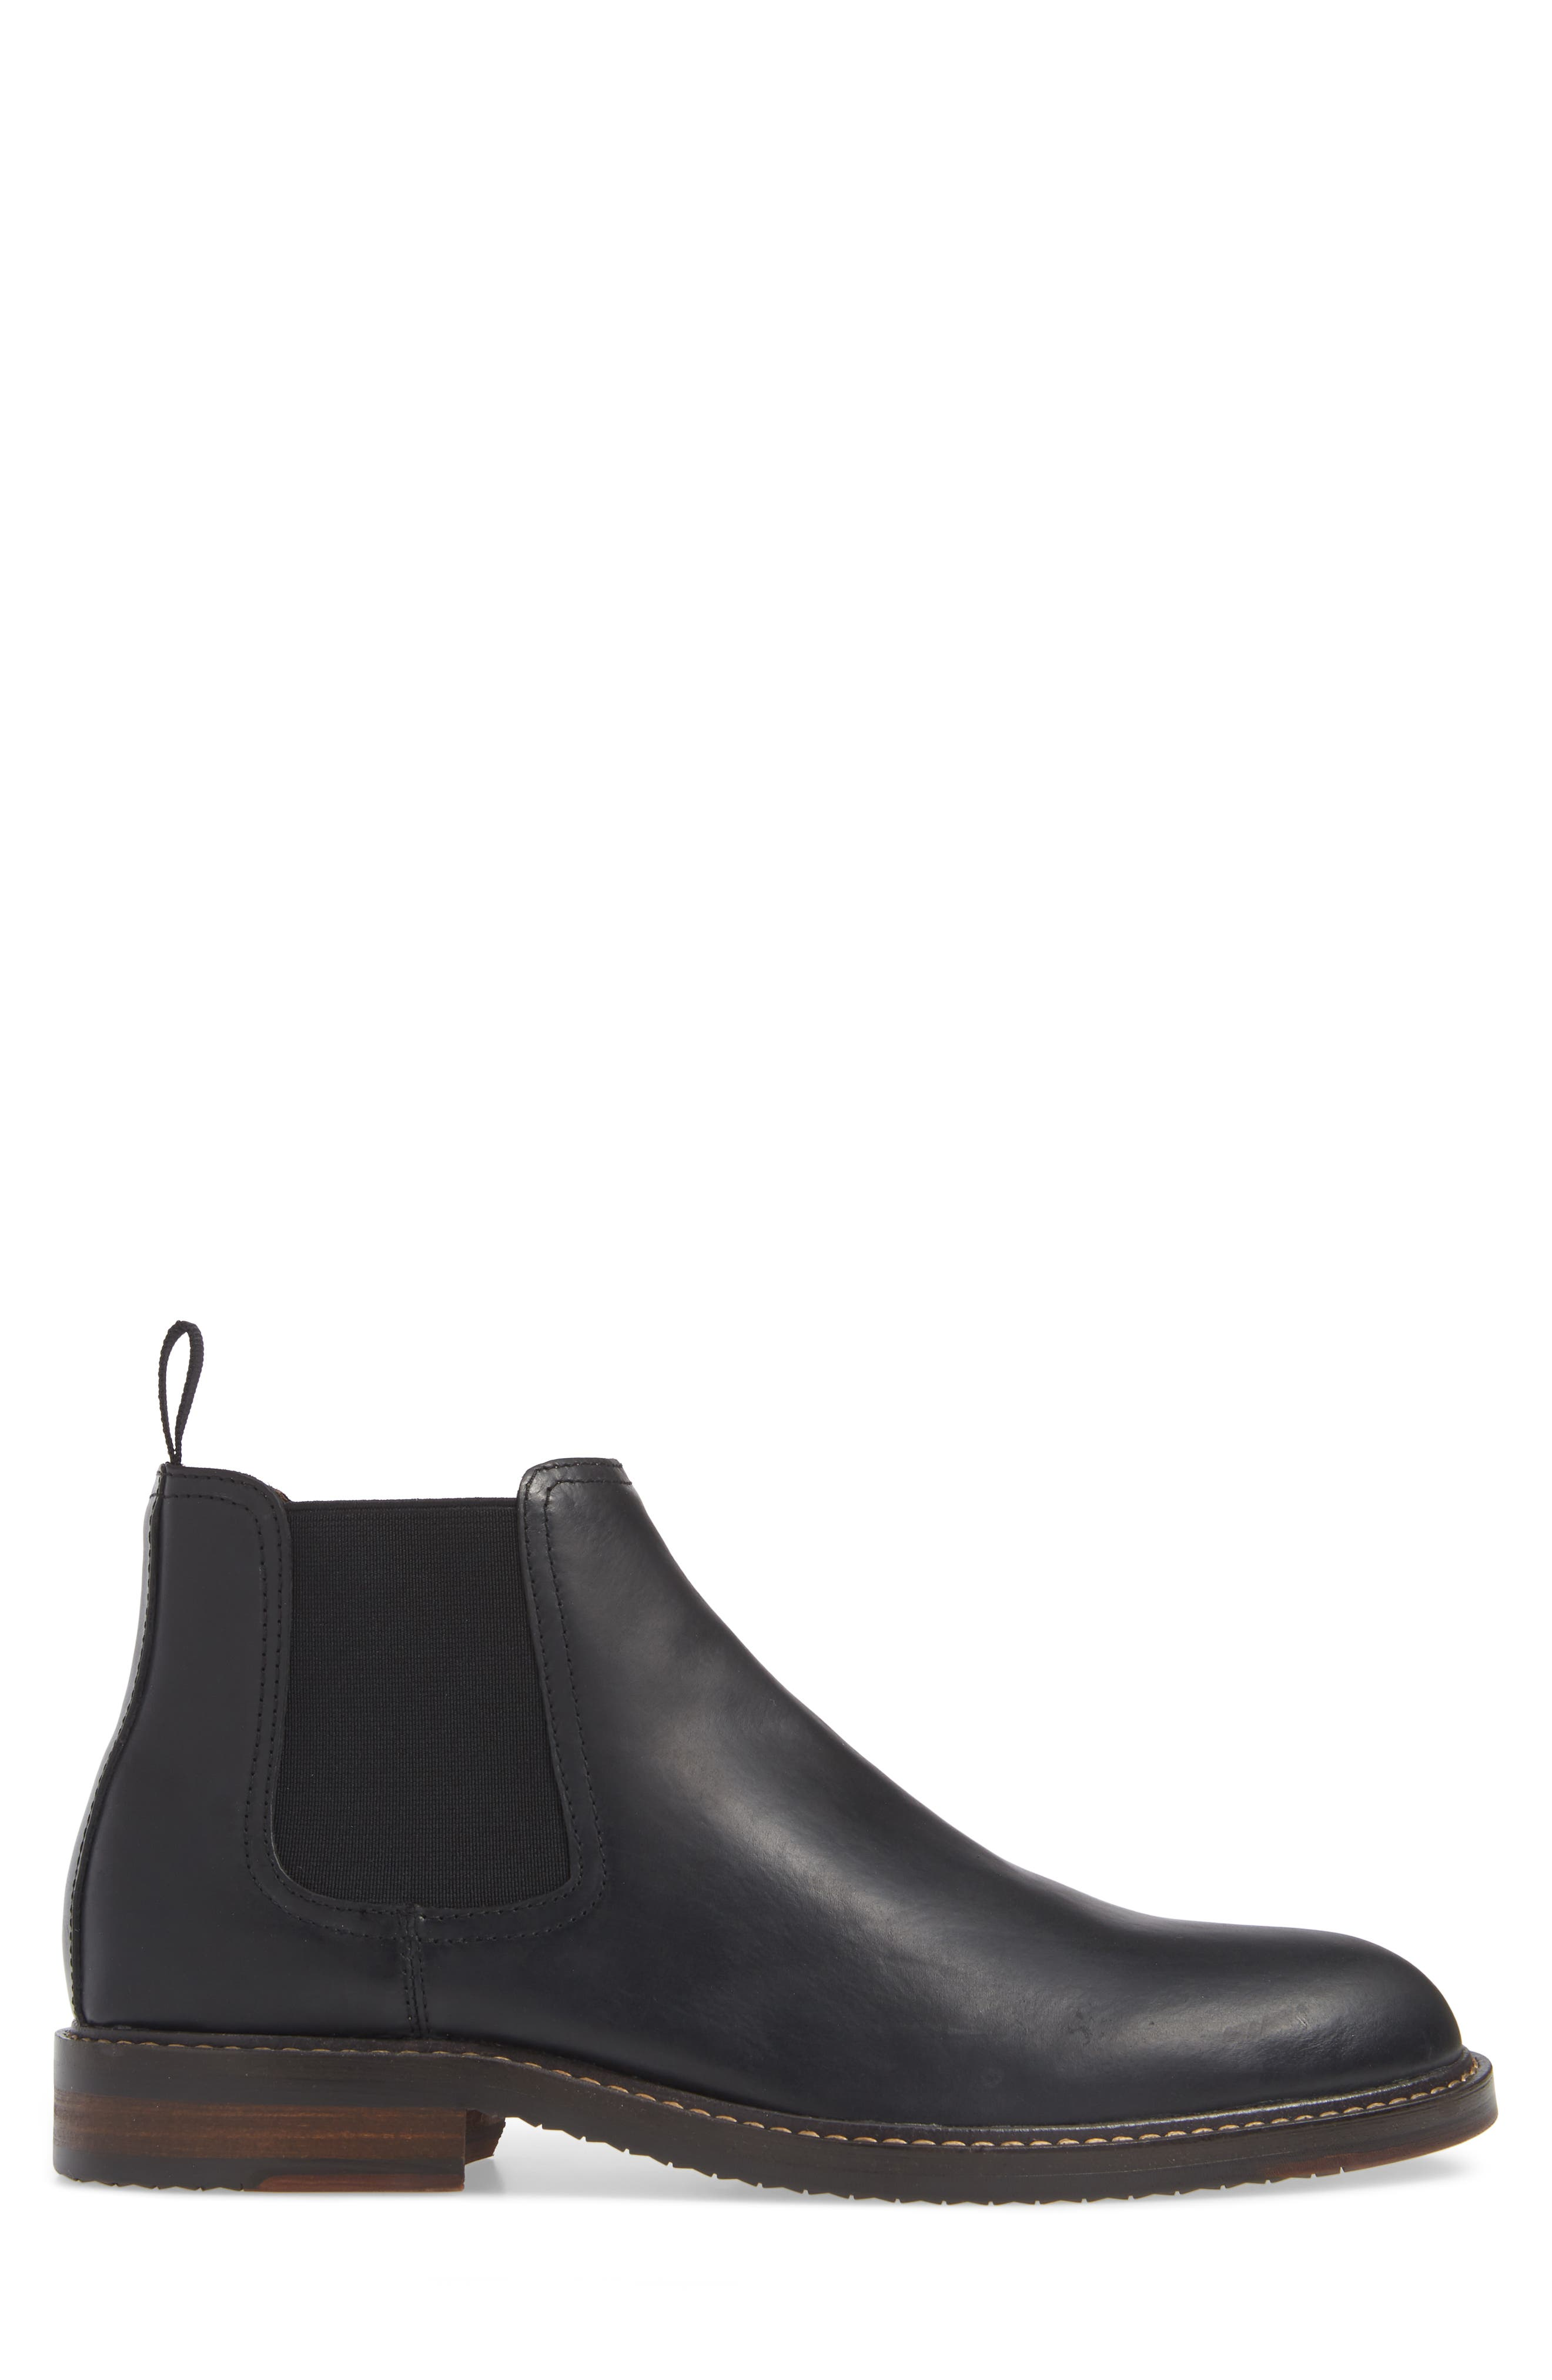 Brooks Chelsea Boot,                             Alternate thumbnail 3, color,                             BLACK LEATHER